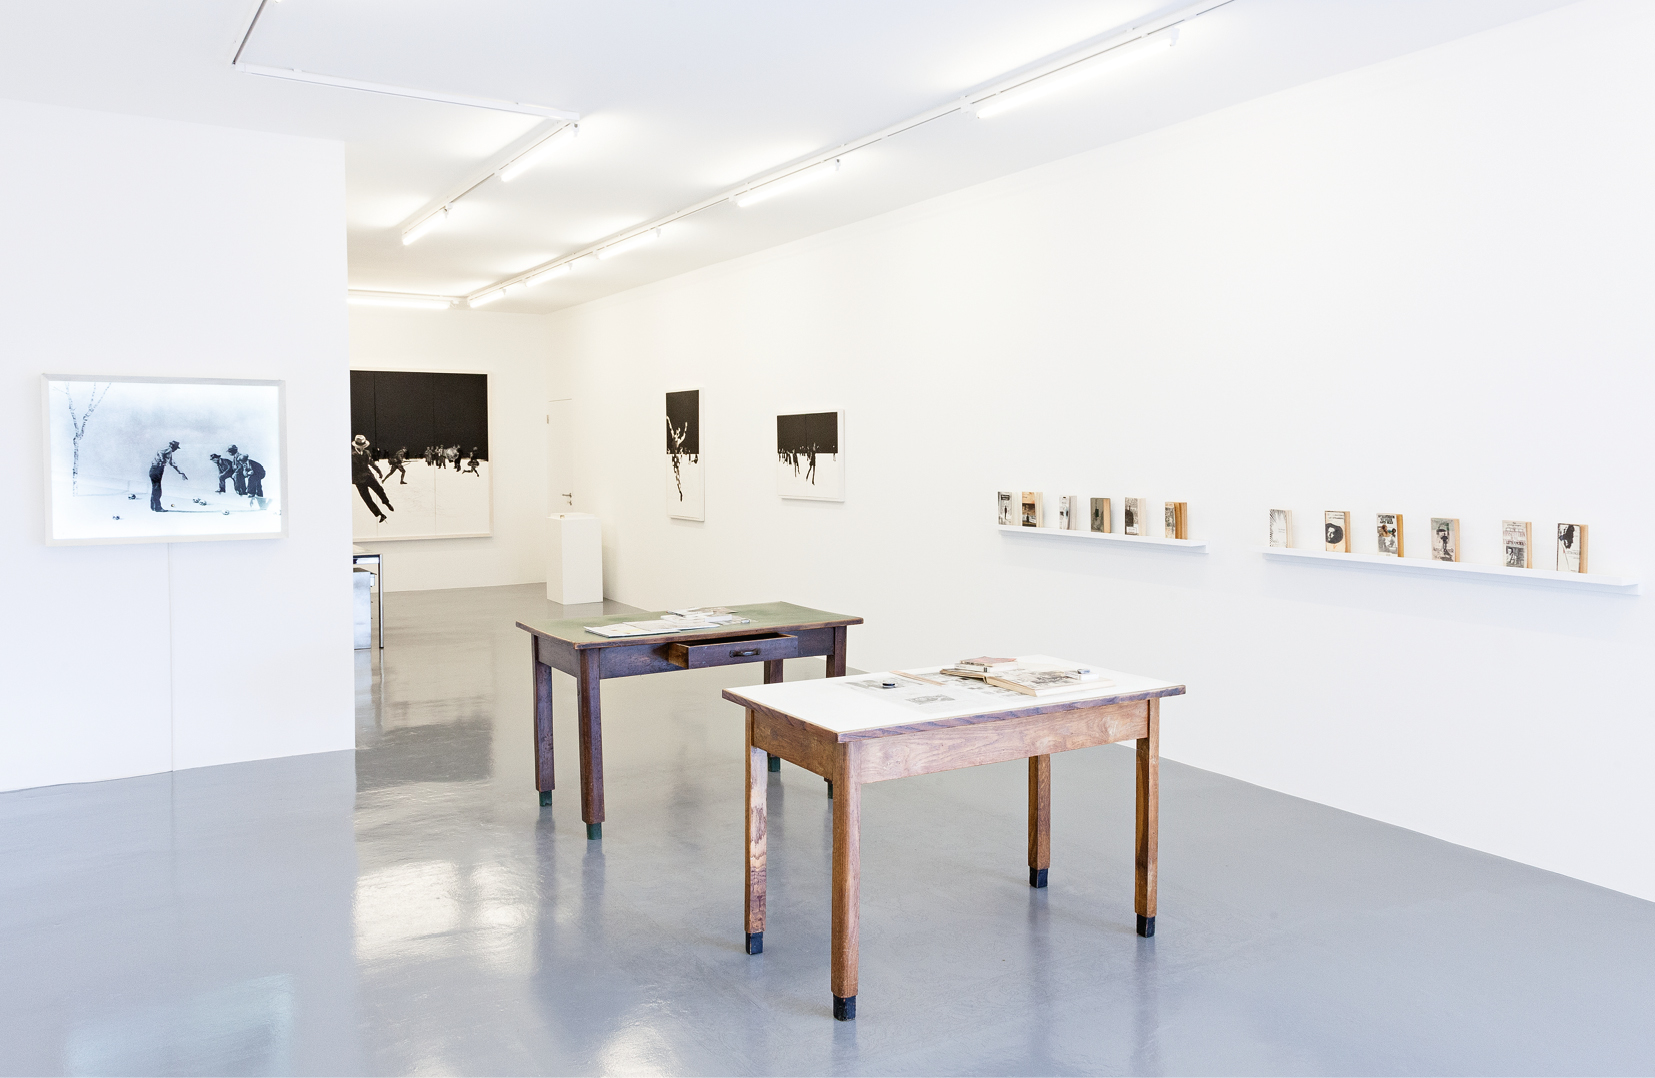 The Outsider , was housed in the Art Bärtschi & Cie Geneva until last March 13.